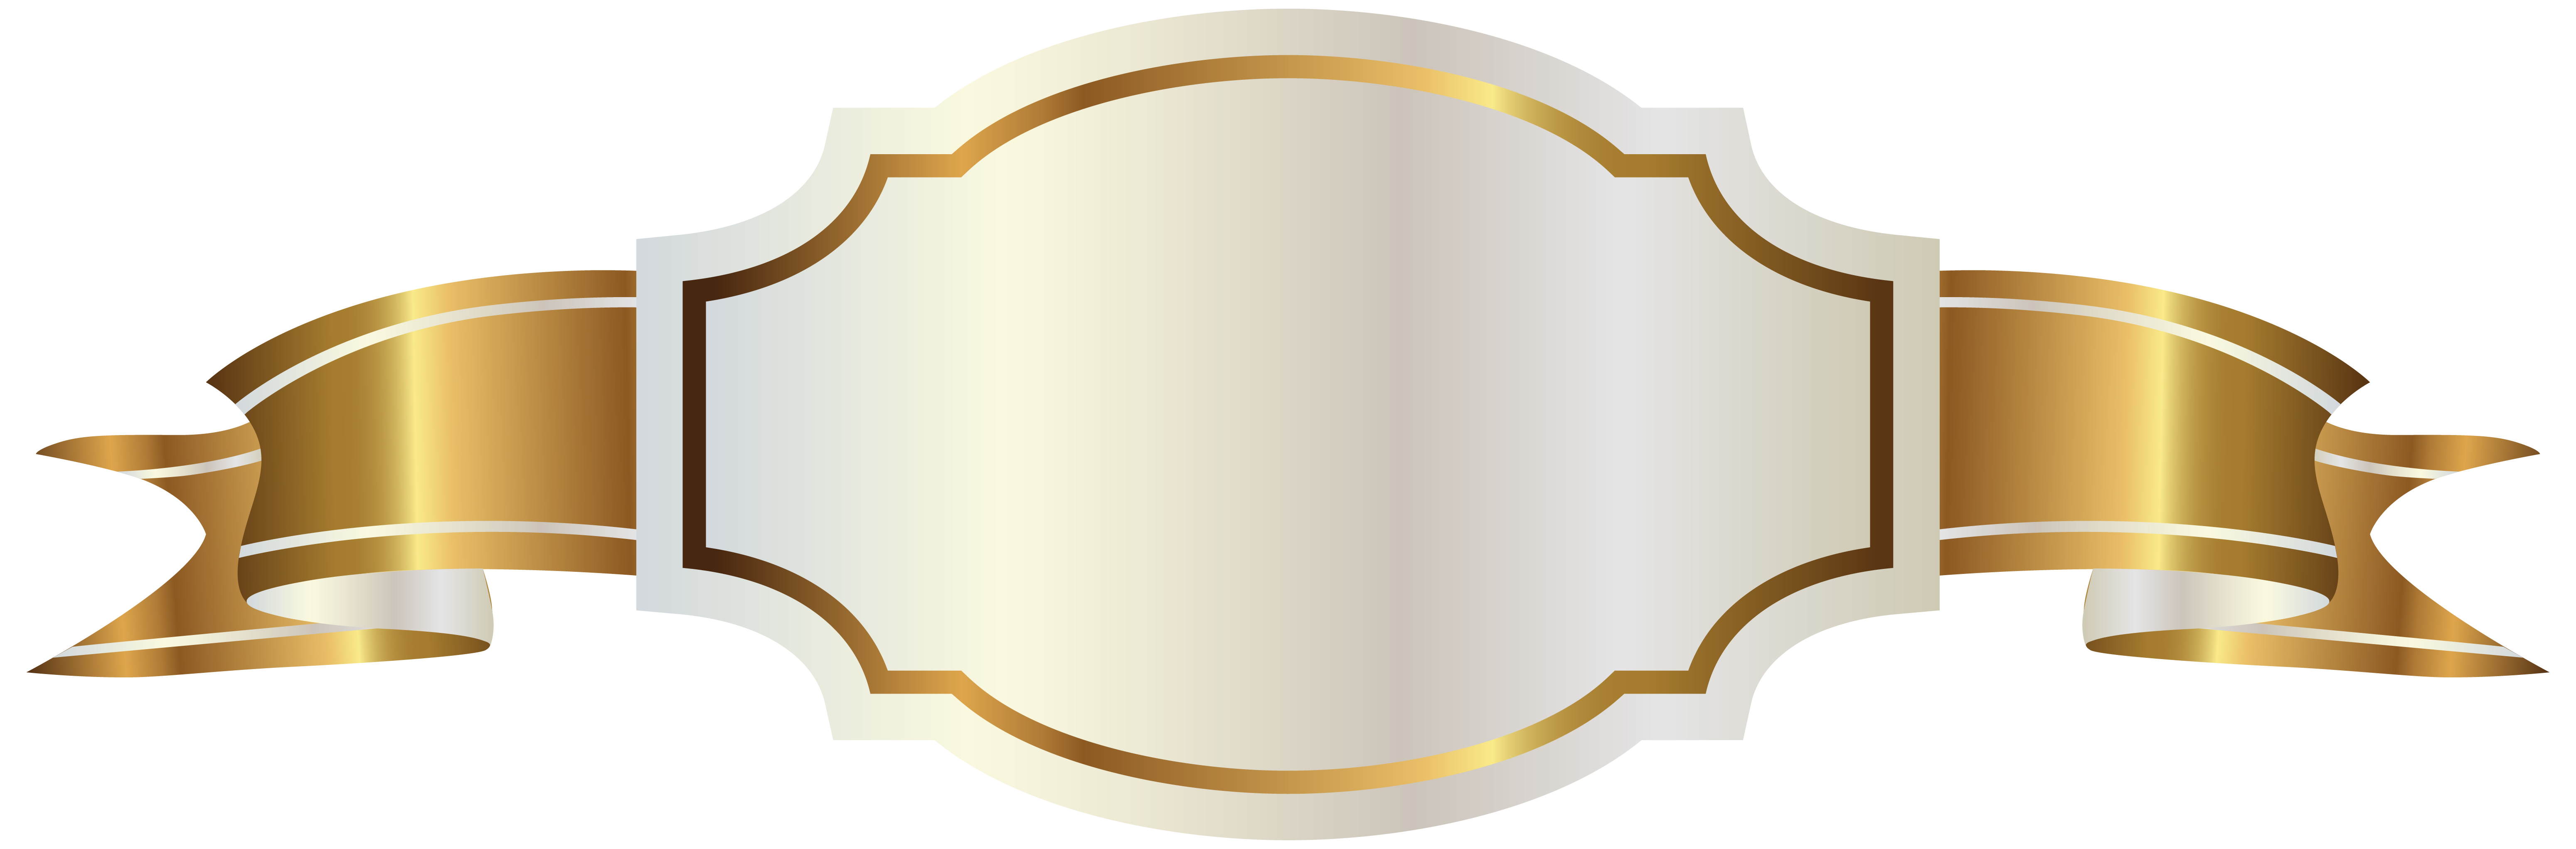 Label clipart banner. White and gold png